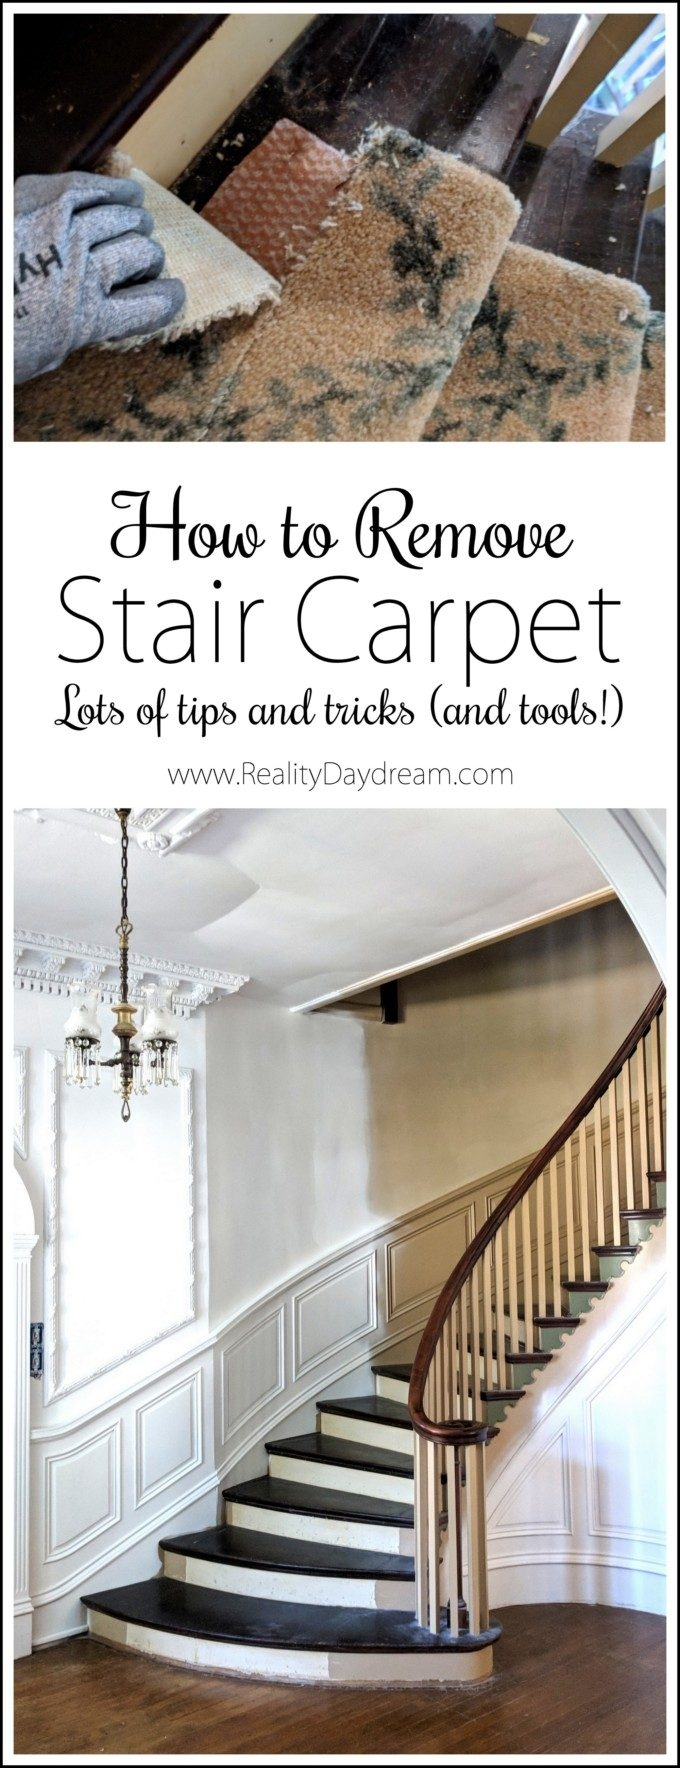 How To Remove Stair Carpet Tips And Tricks Reality Daydream | Stairs With Carpet In The Middle | Runner Corner | Laminate | Contemporary | Run On Stair | Marble